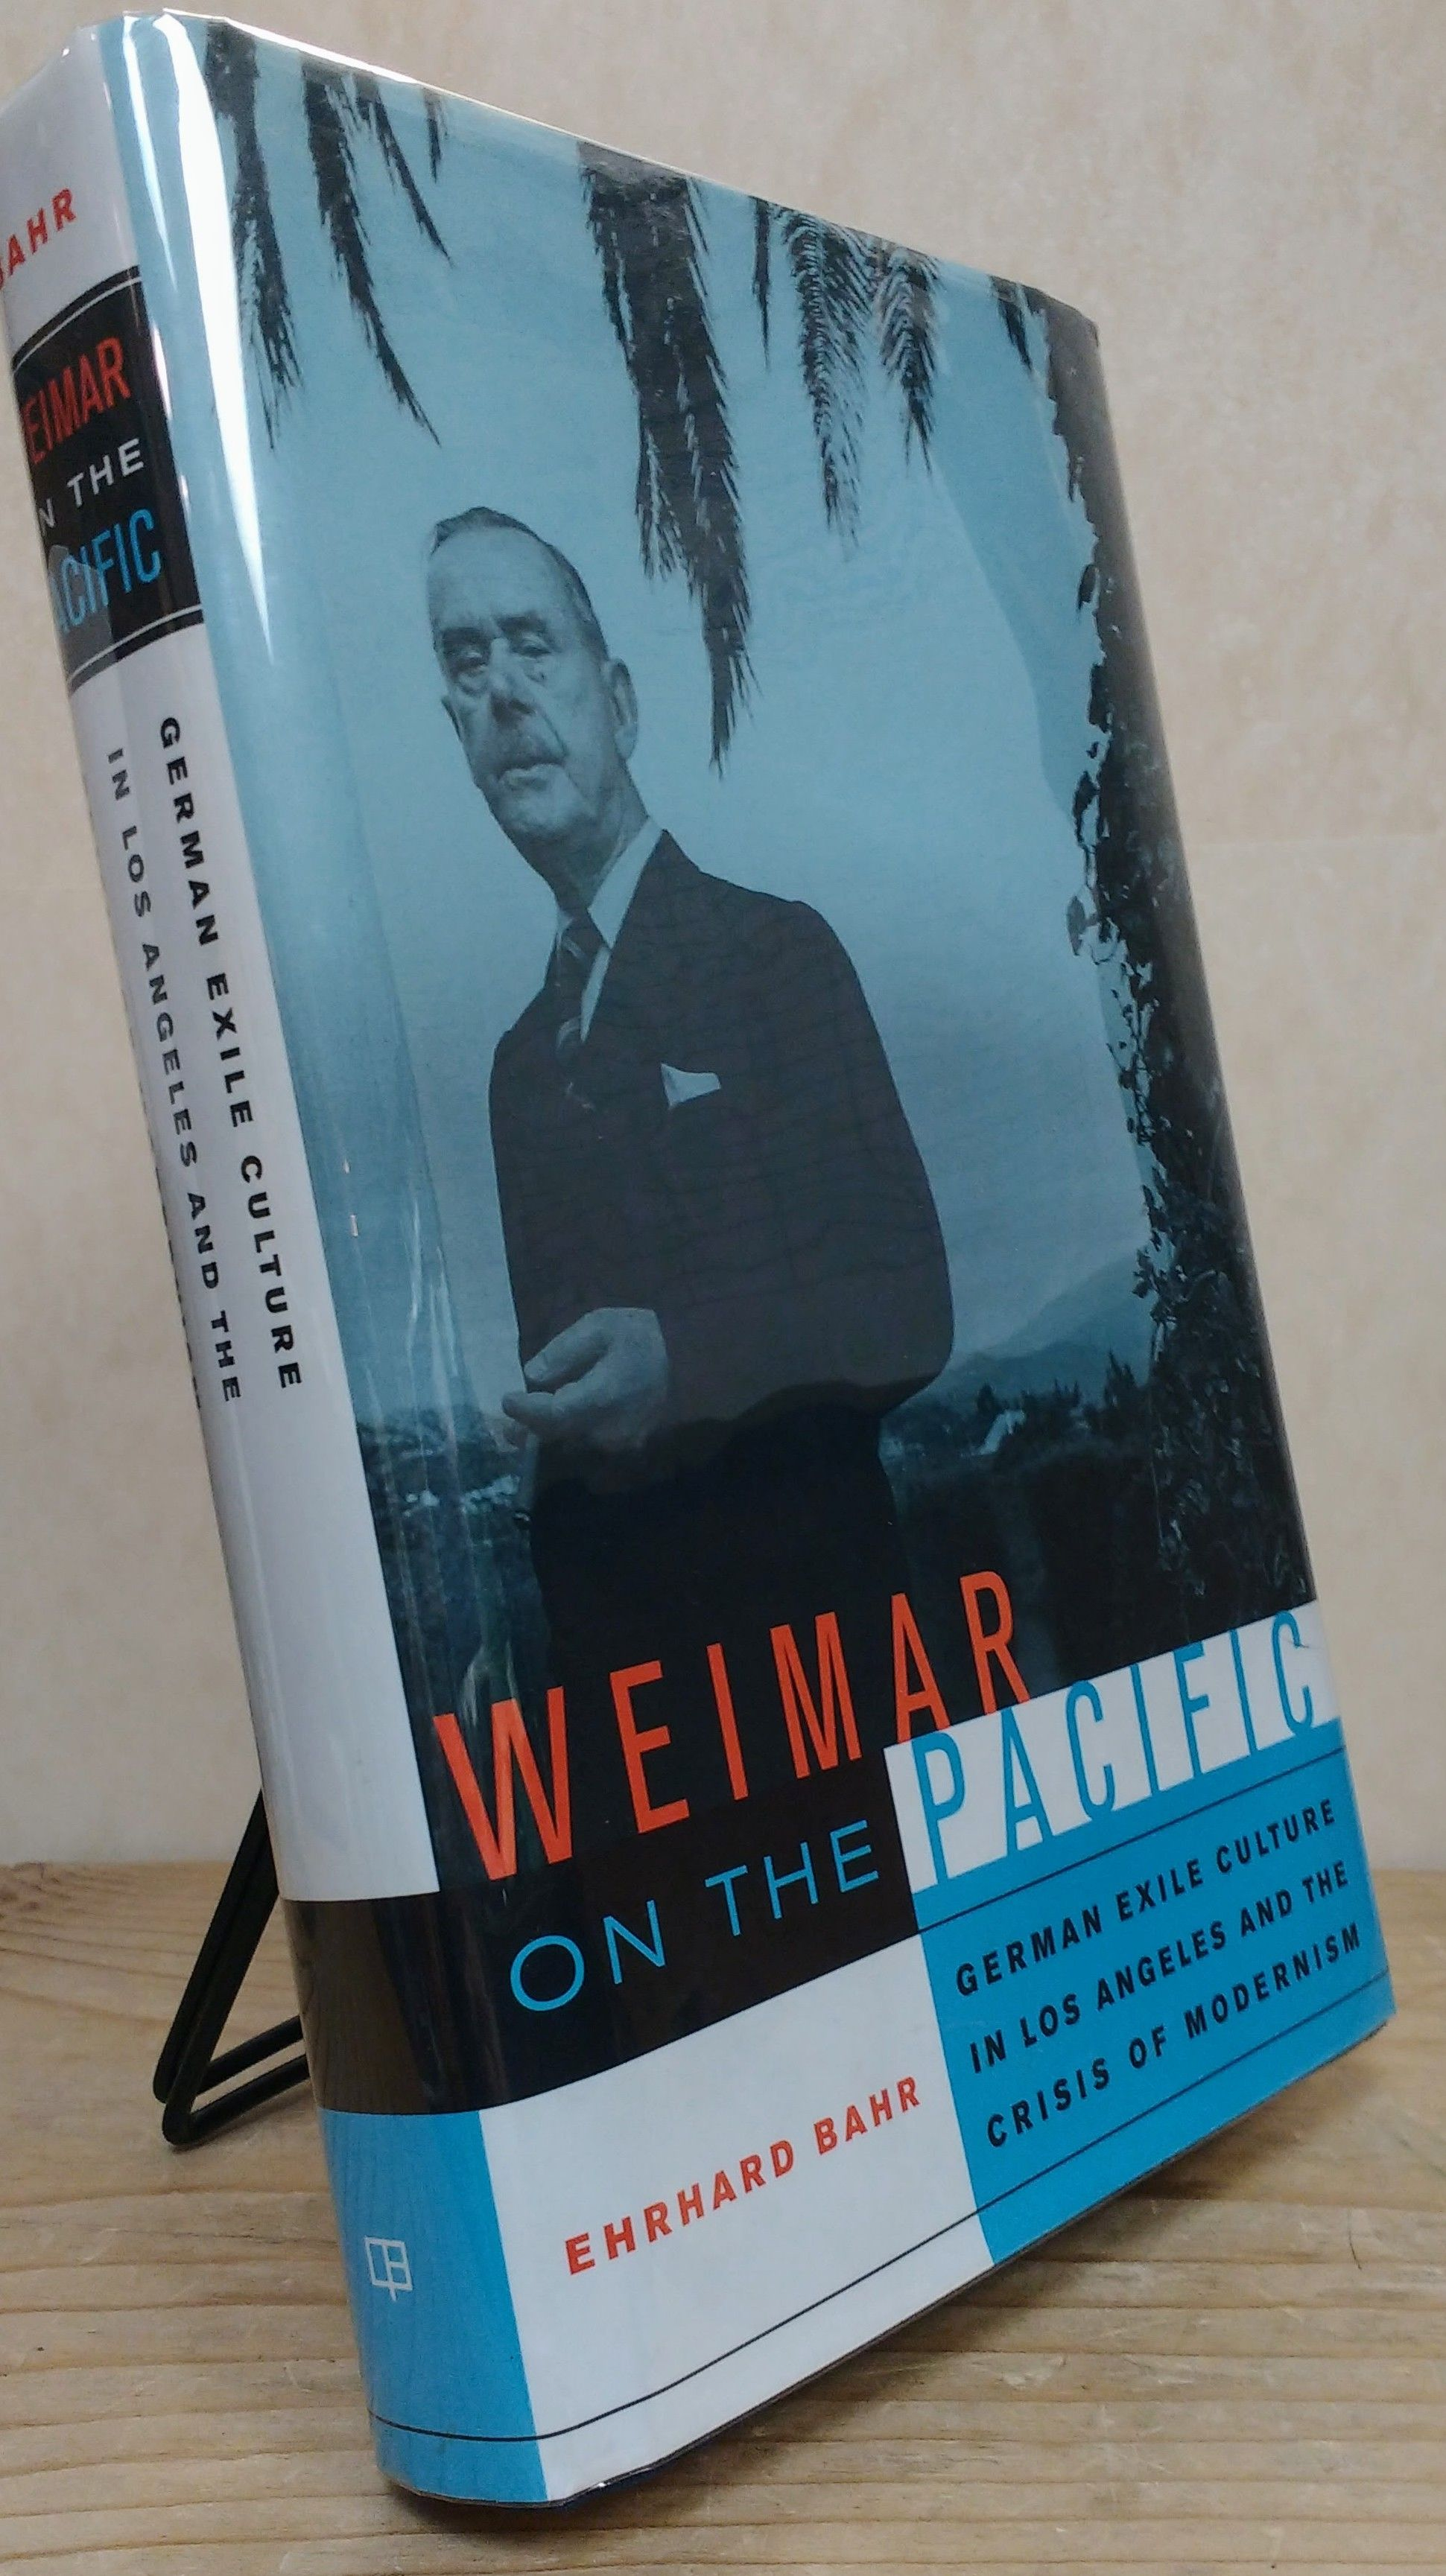 Weimar on the Pacific: German Exile Culture in Los Angeles and the Crisis of Modernism (Weimar and Now: German Cultural Criticism), Bahr, Ehrhard